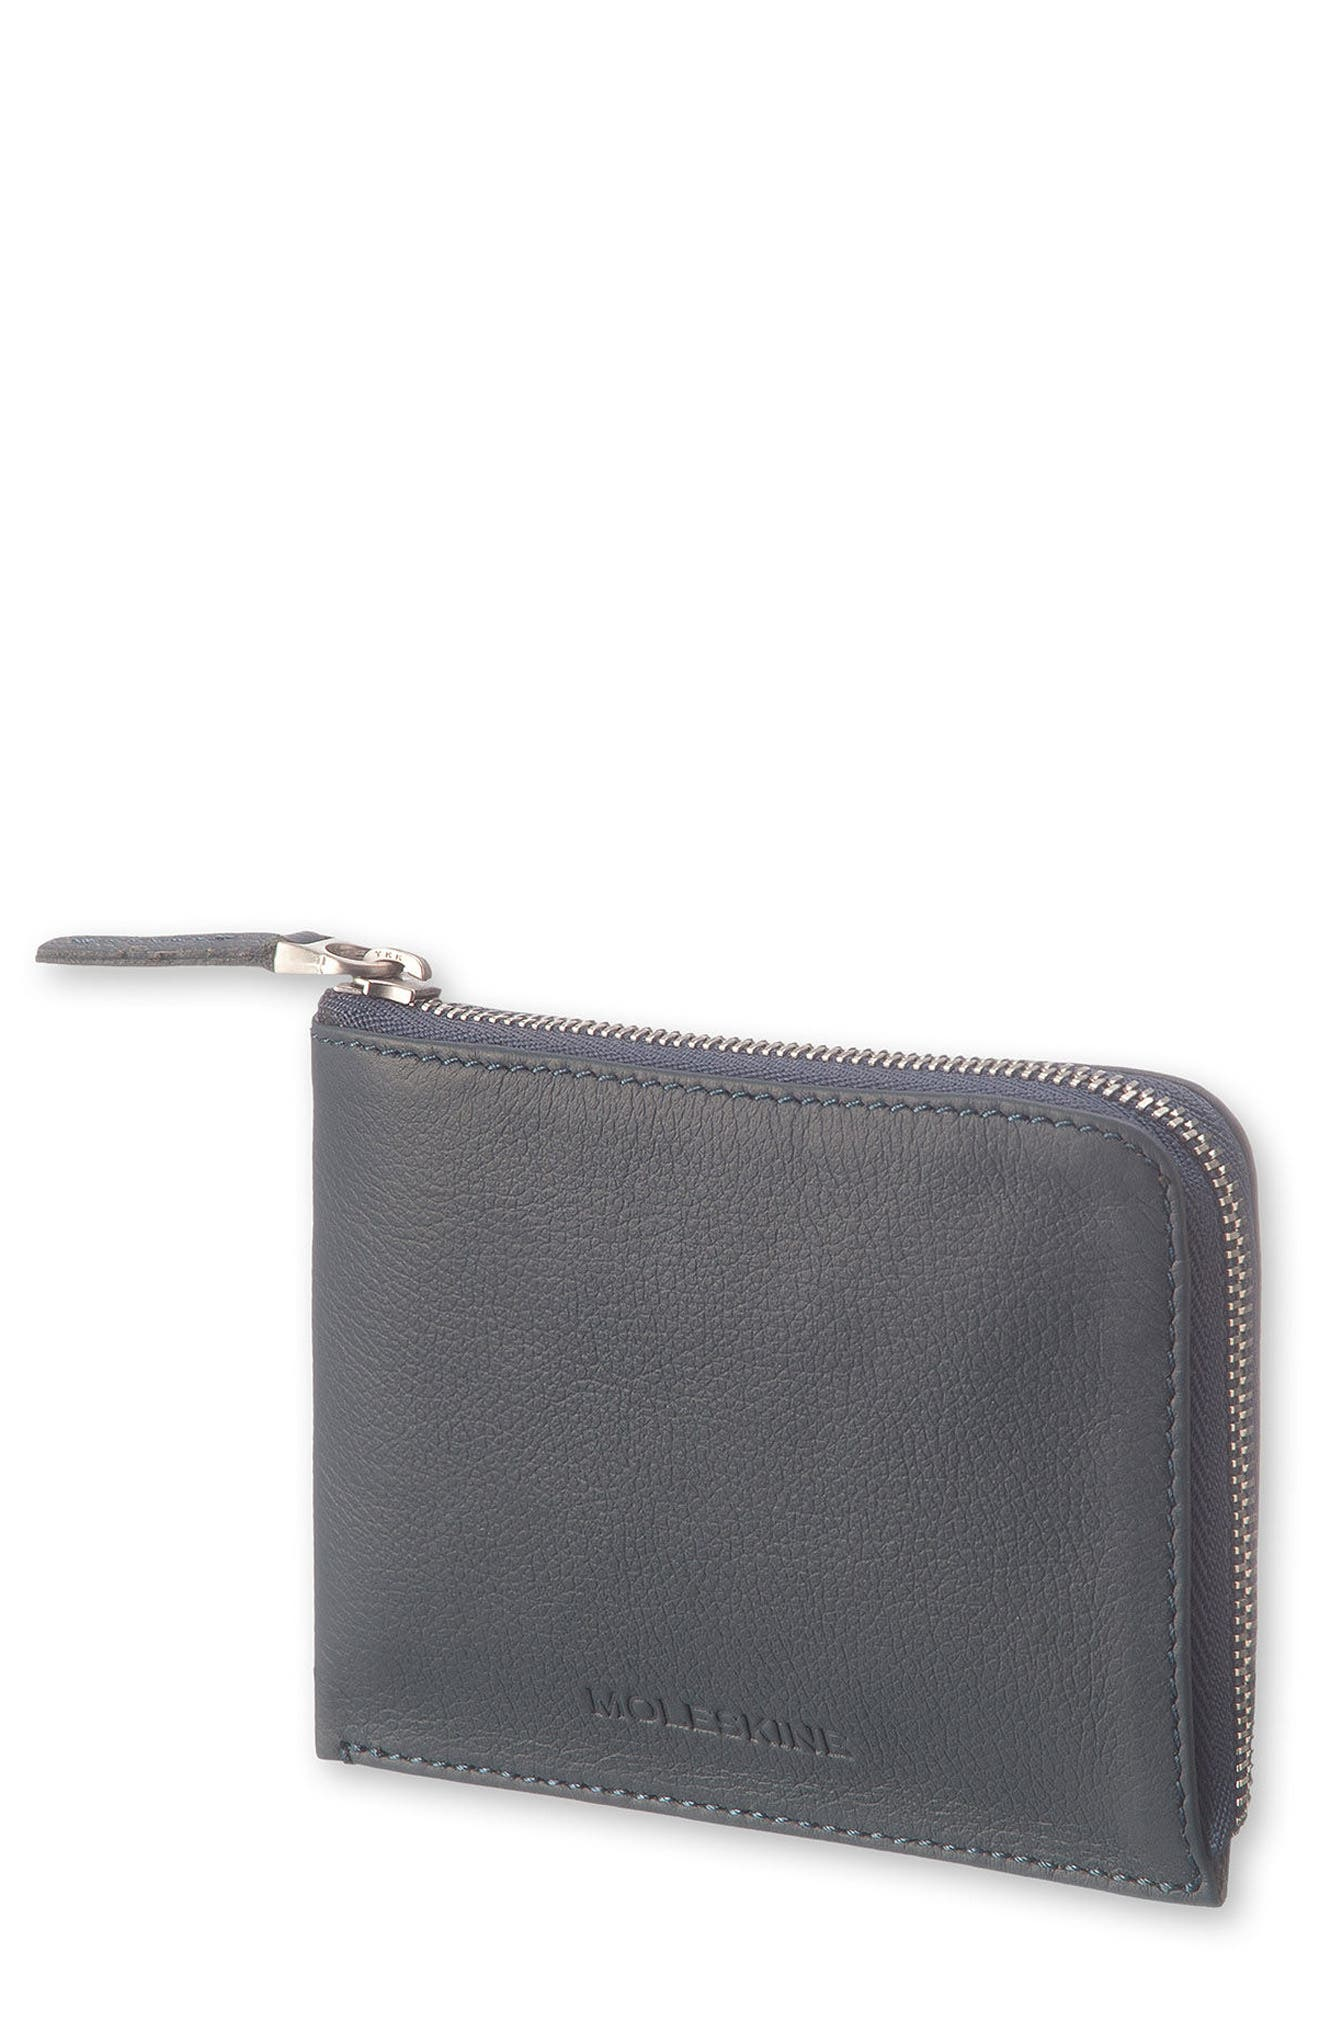 Main Image - Moleskine Lineage Leather Zip Wallet